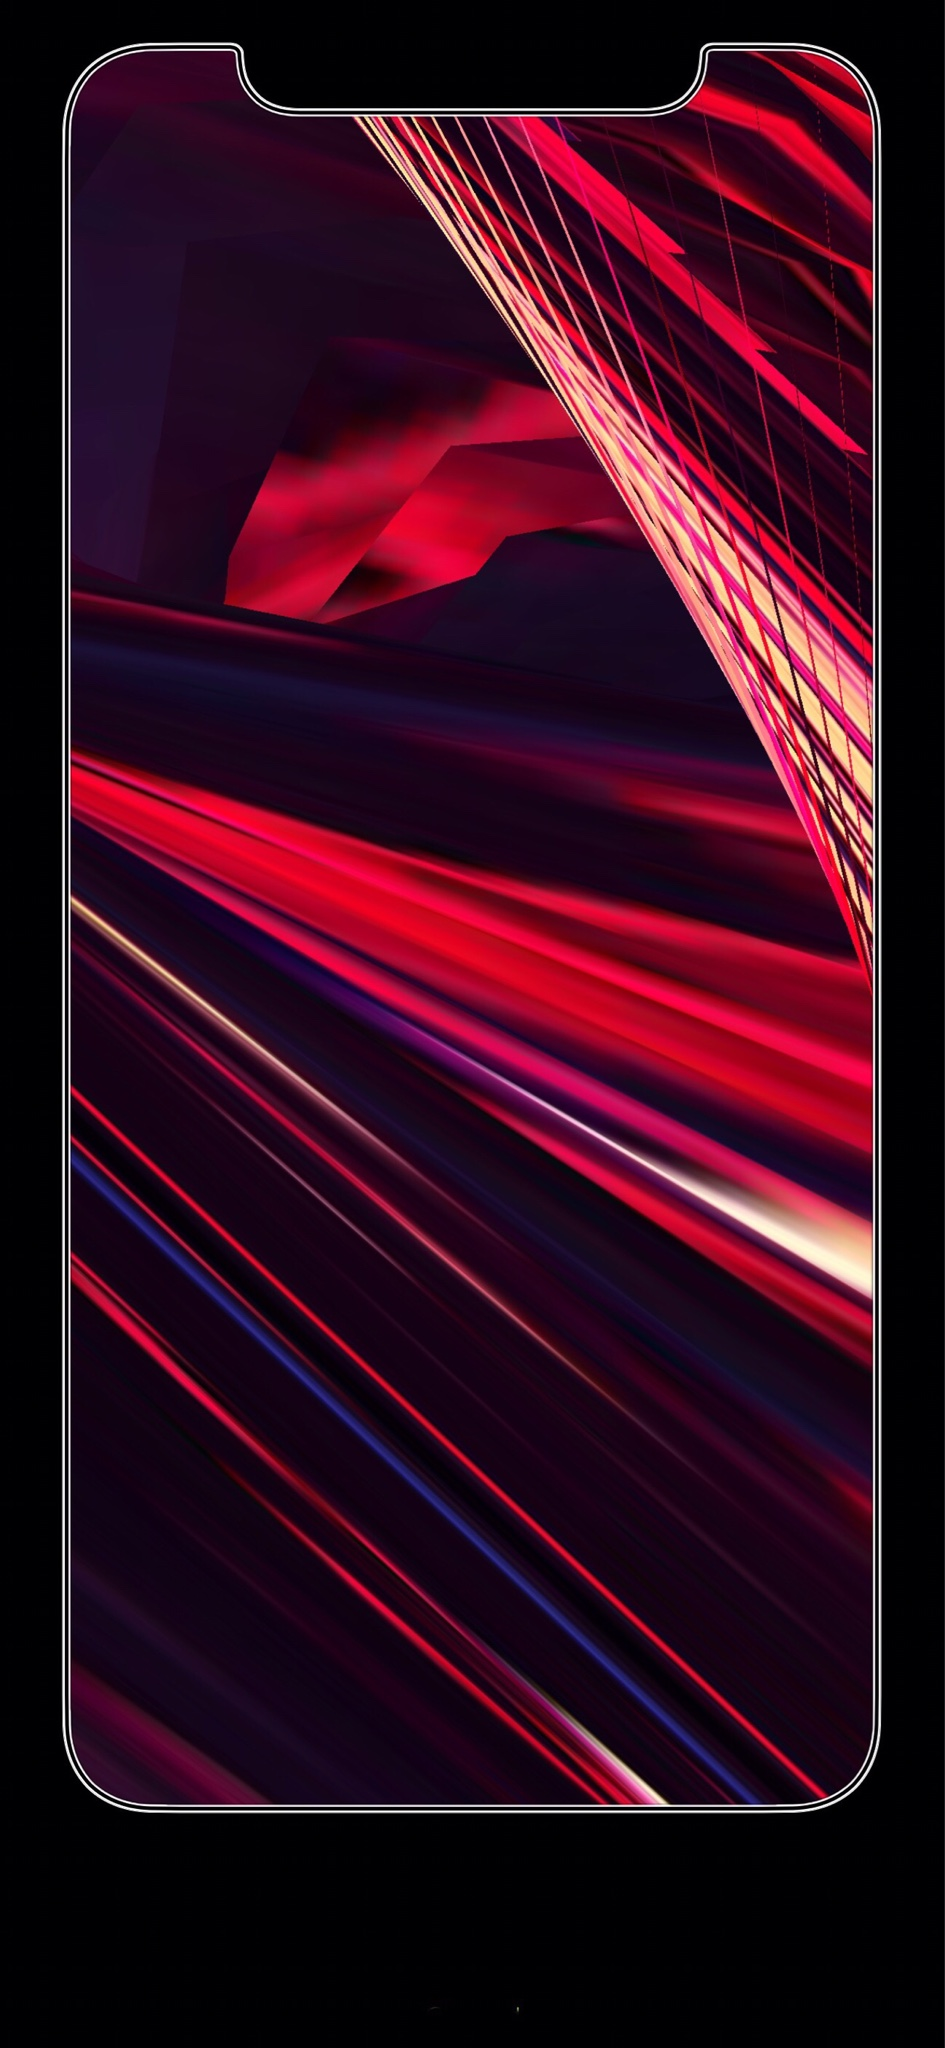 The Iphone X Xs Wallpaper Thread Page 30 Iphone Ipad